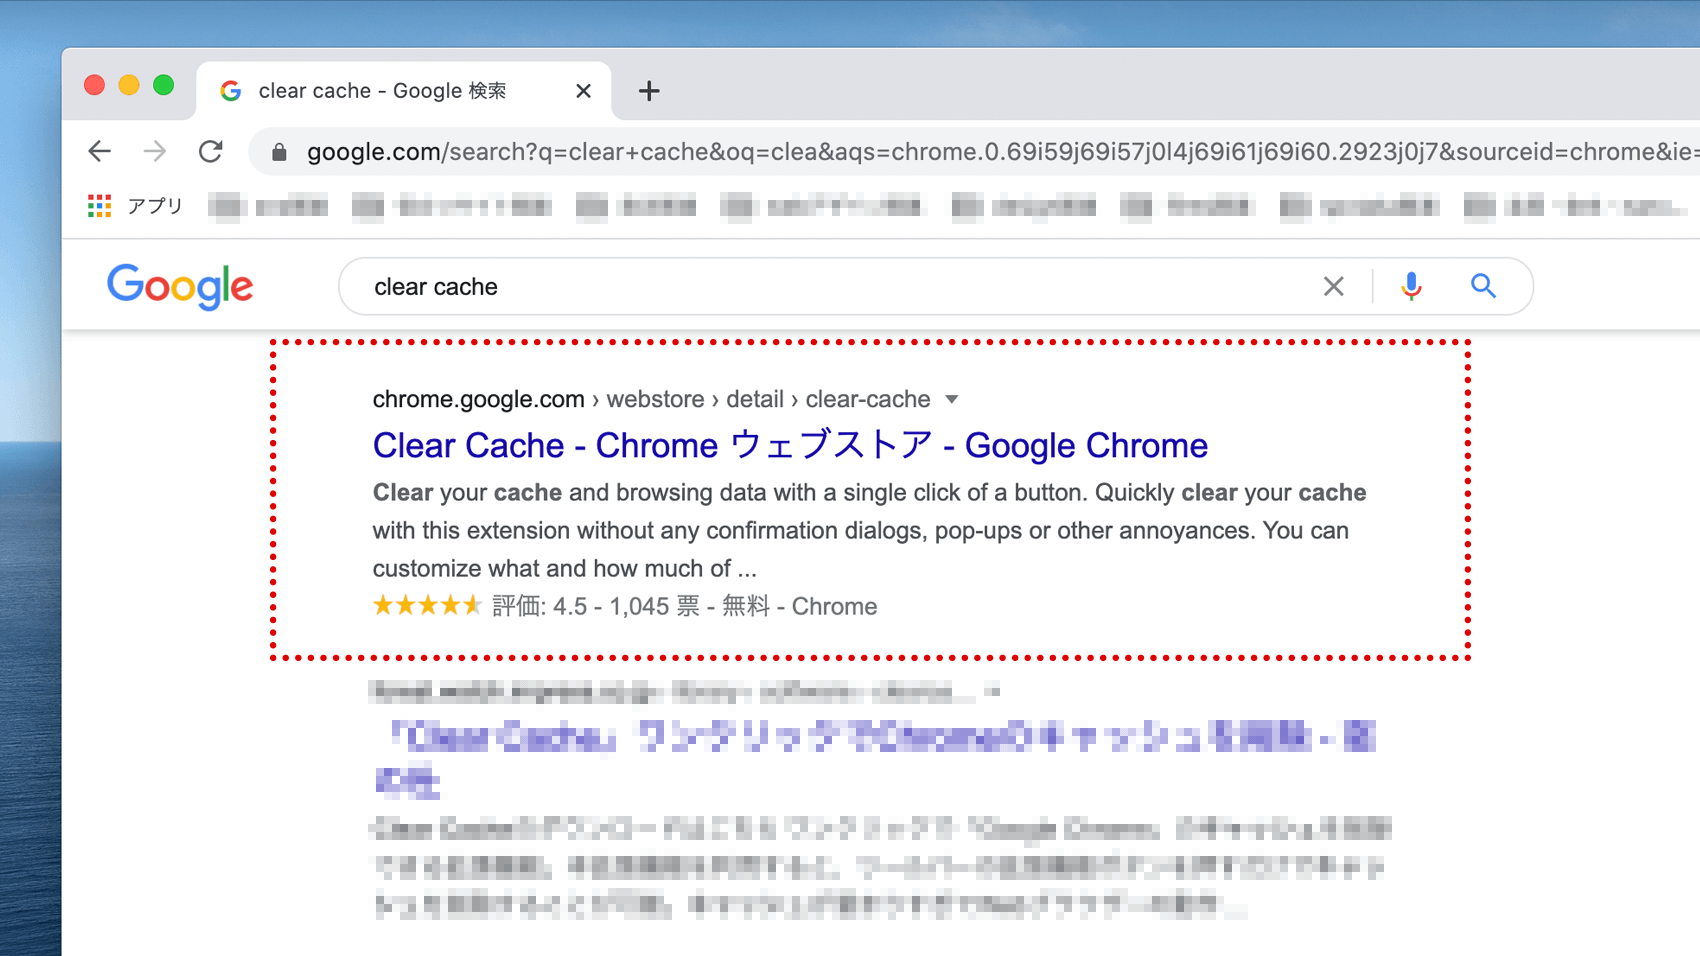 clear cacheでgoogle検索する